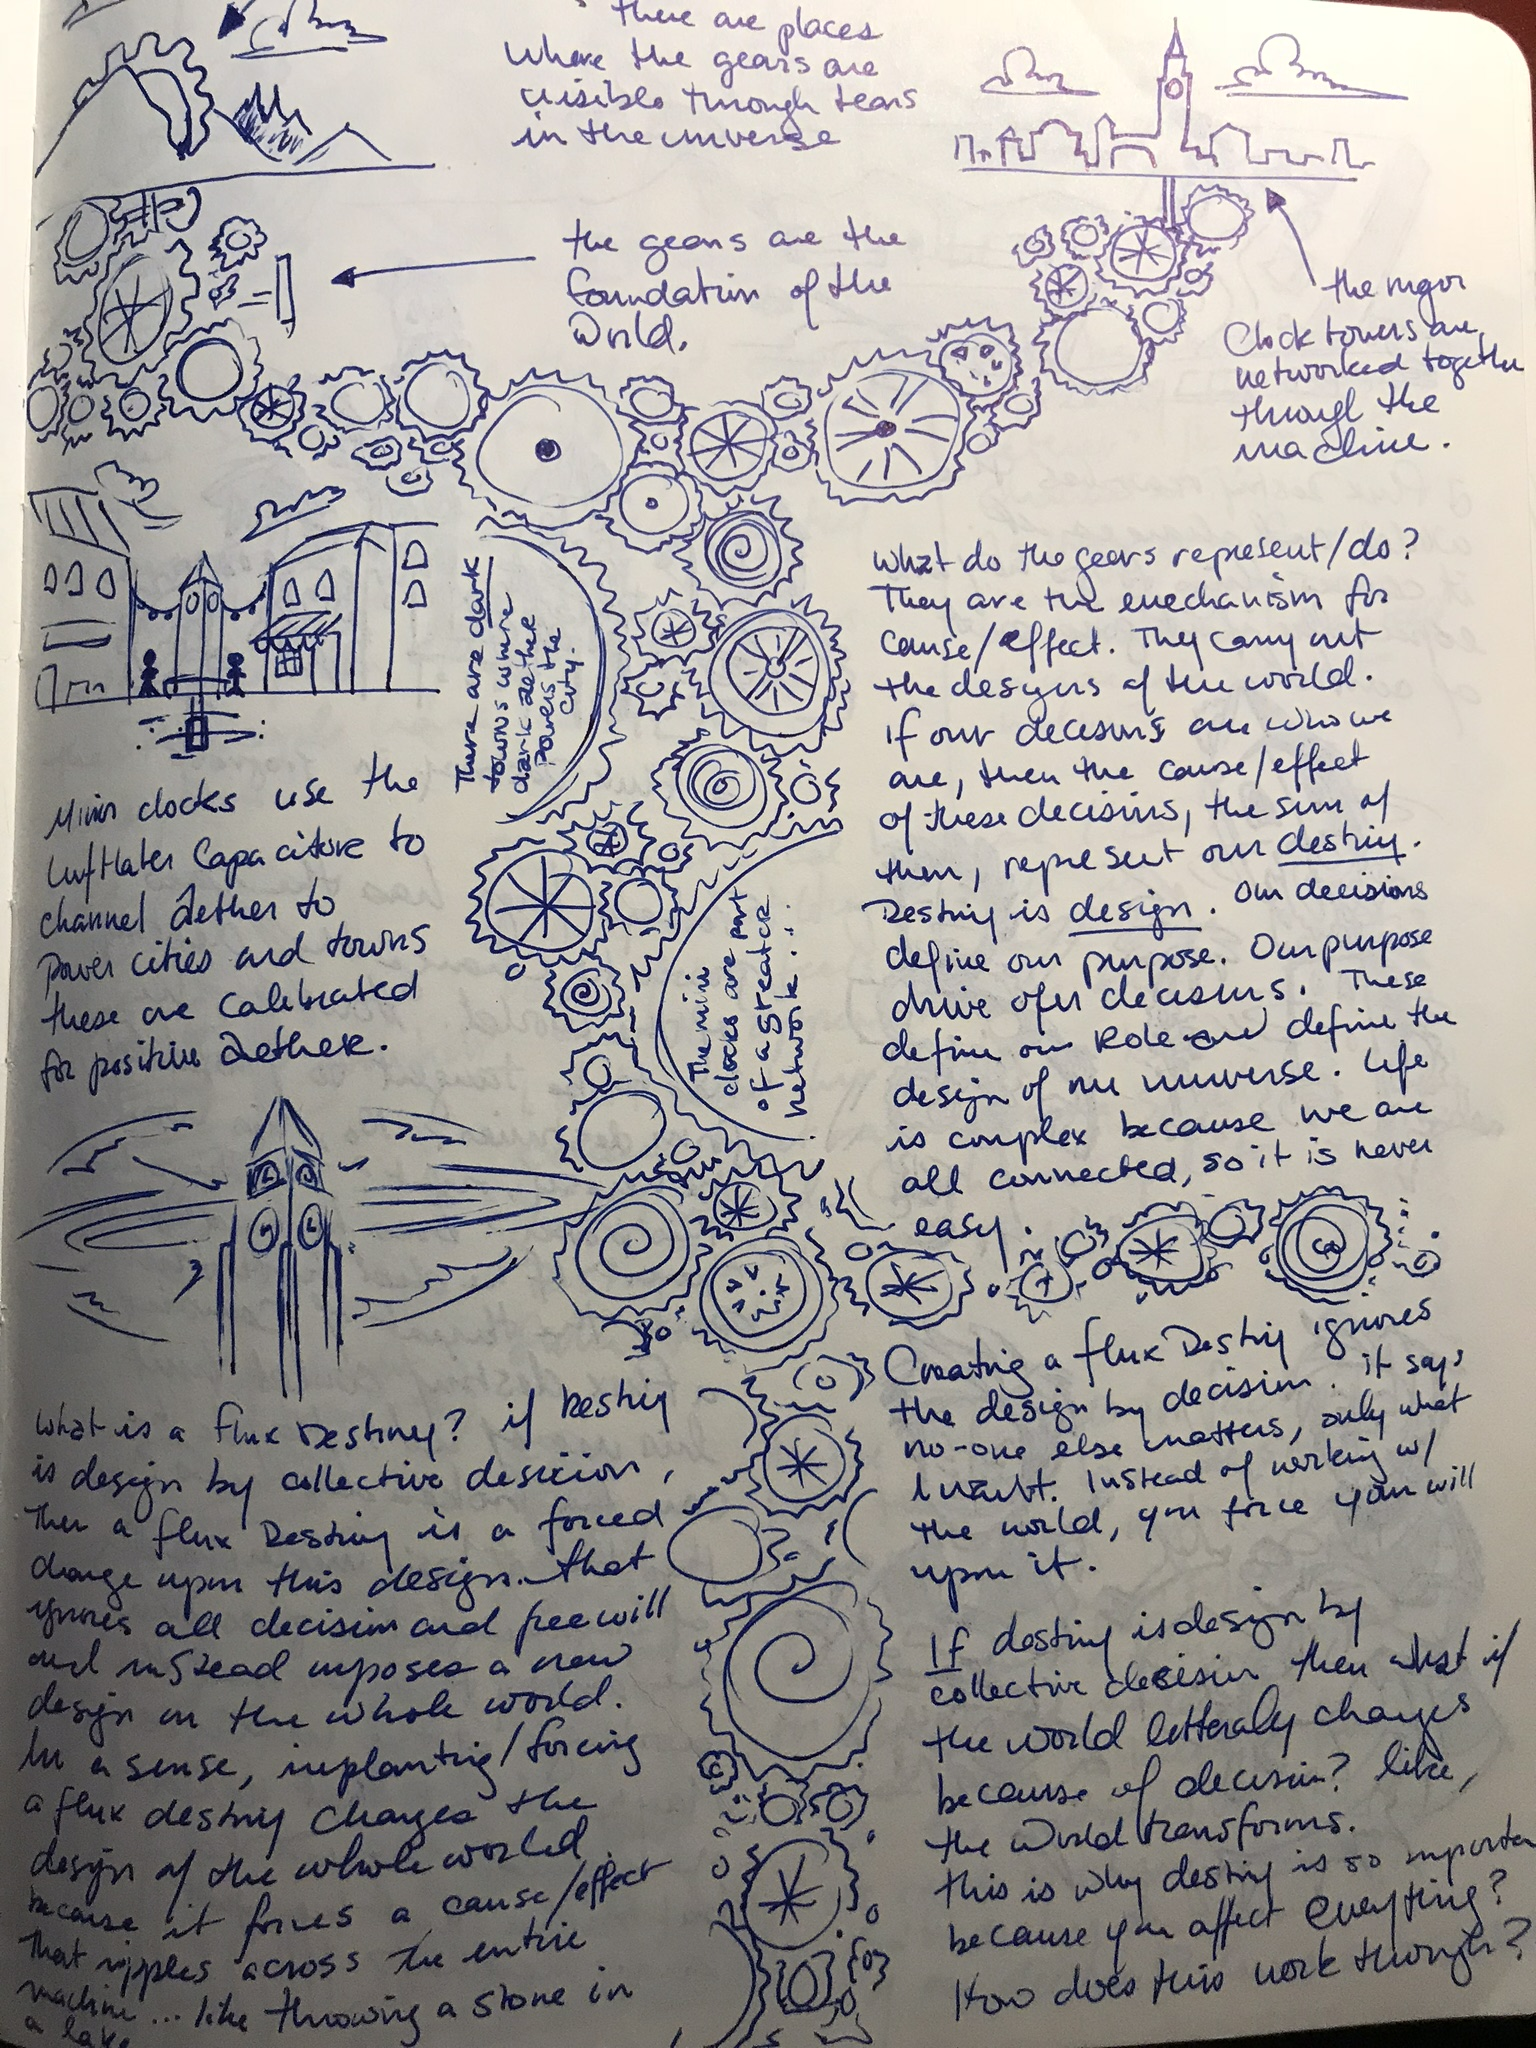 A page from one of Chris Moujaes' sketchbooks